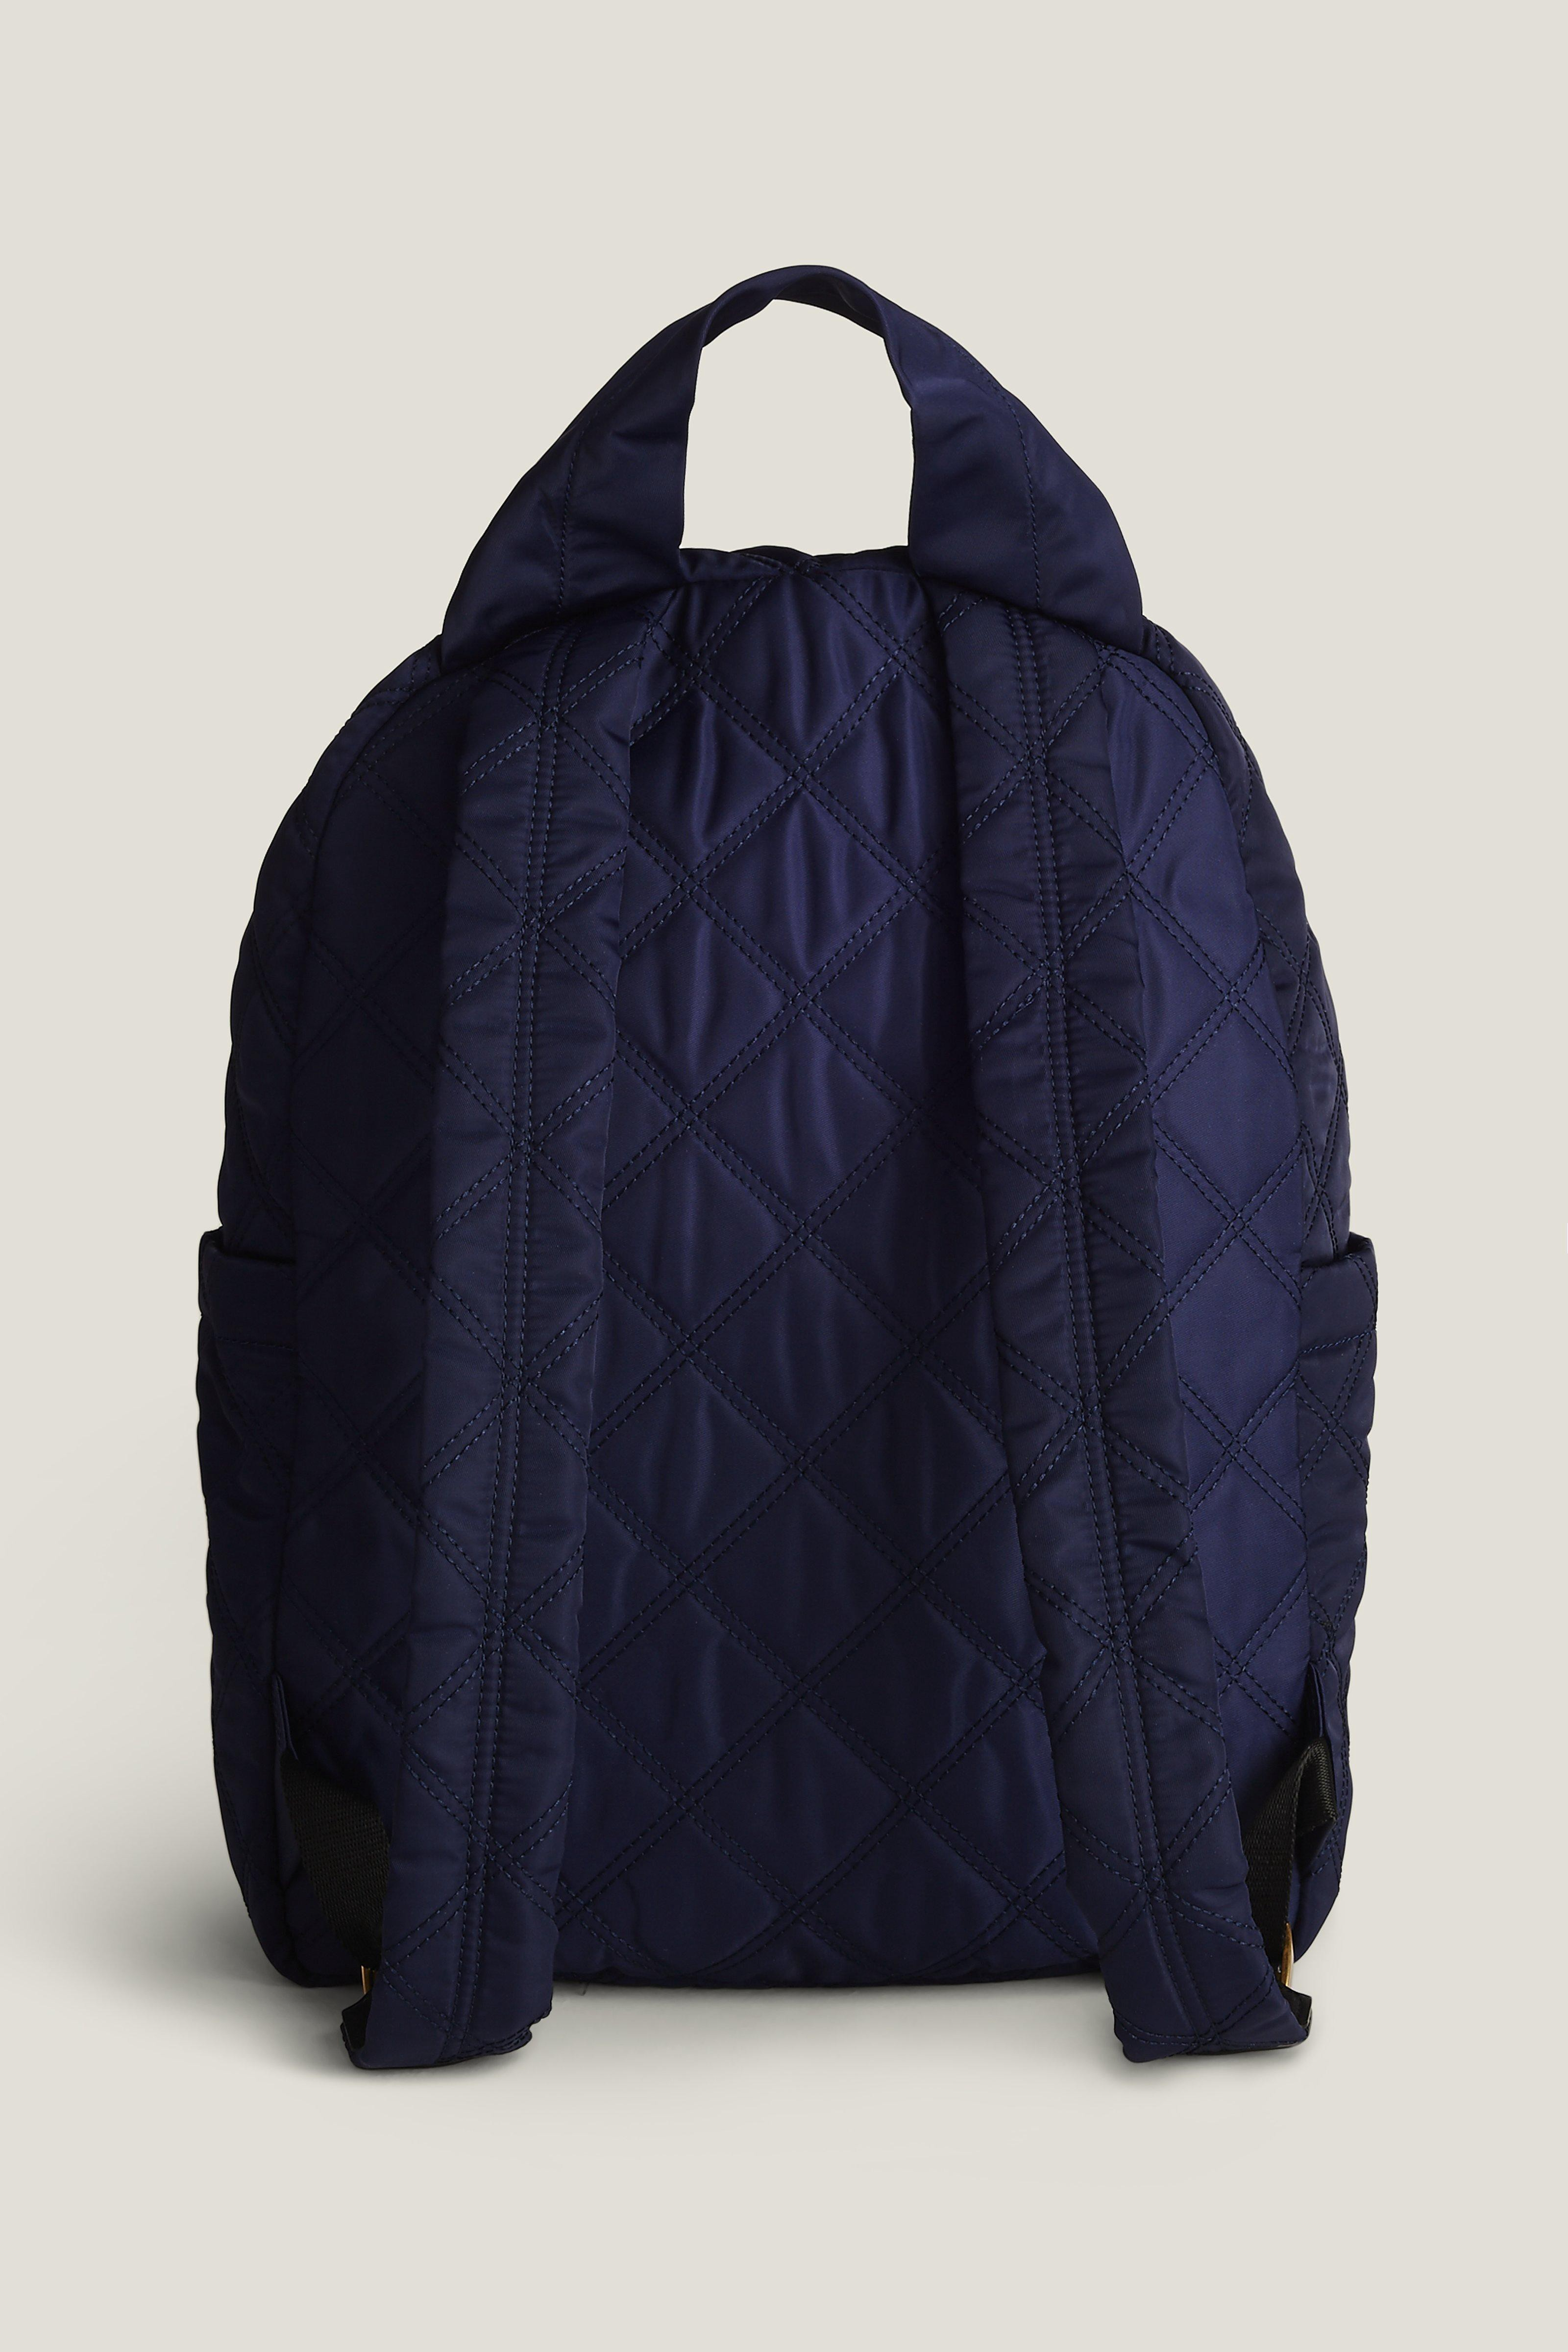 MARC JACOBS KNOT LARGE QUILTED NYLON BACKPACK, MIDNIGHT BLUE